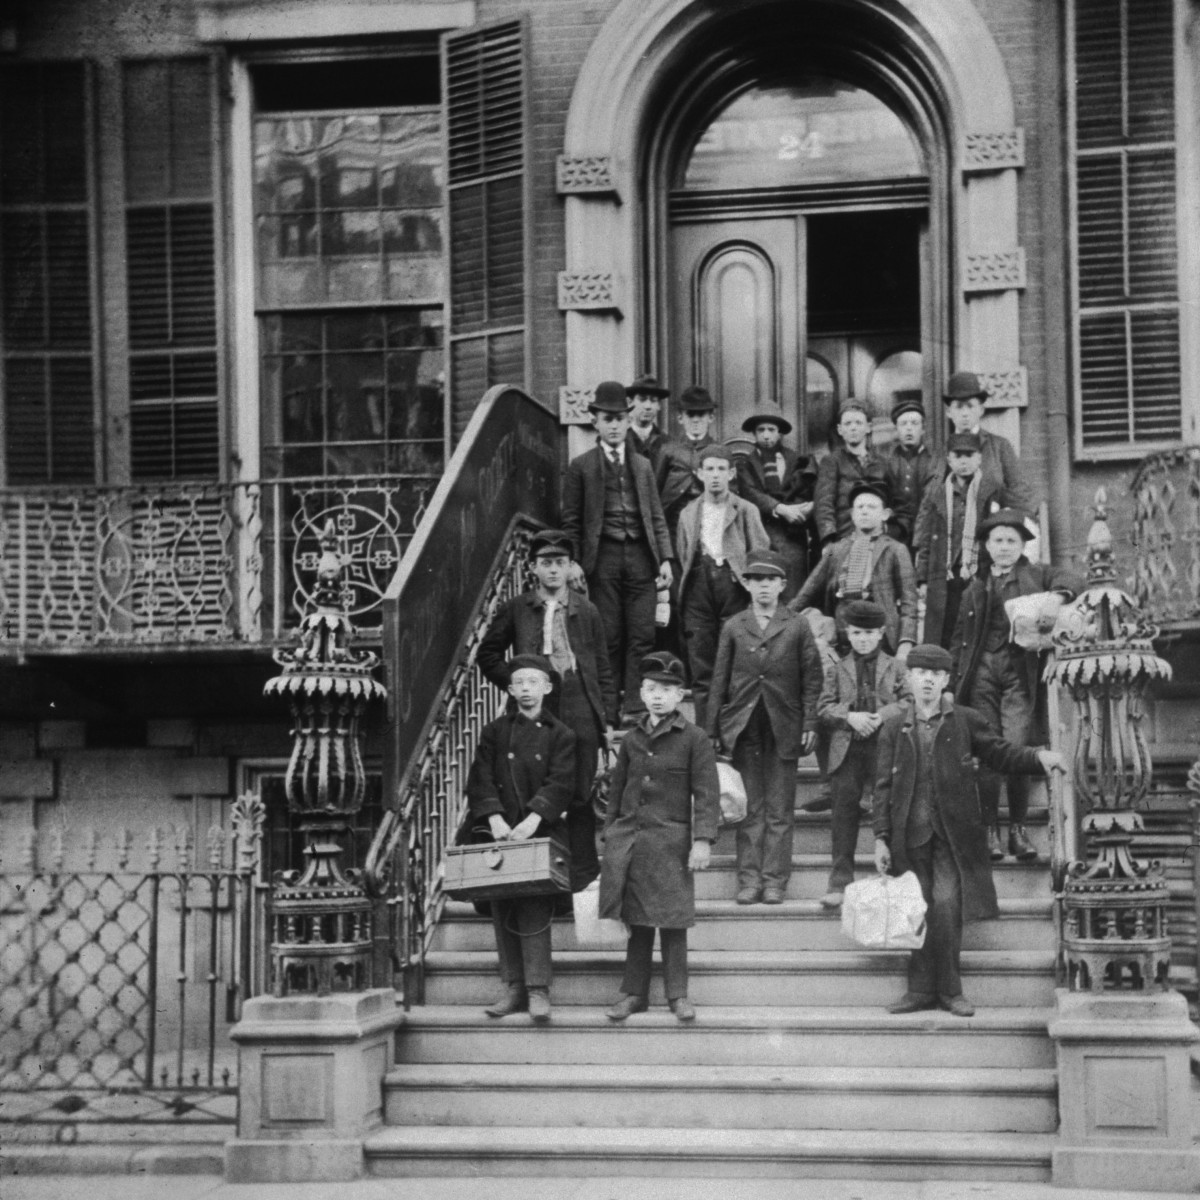 A group outside of the Children's Aid Society's central office in New York City, circa 1895. The children hold satchels with their belongings as they prepare to travel west.